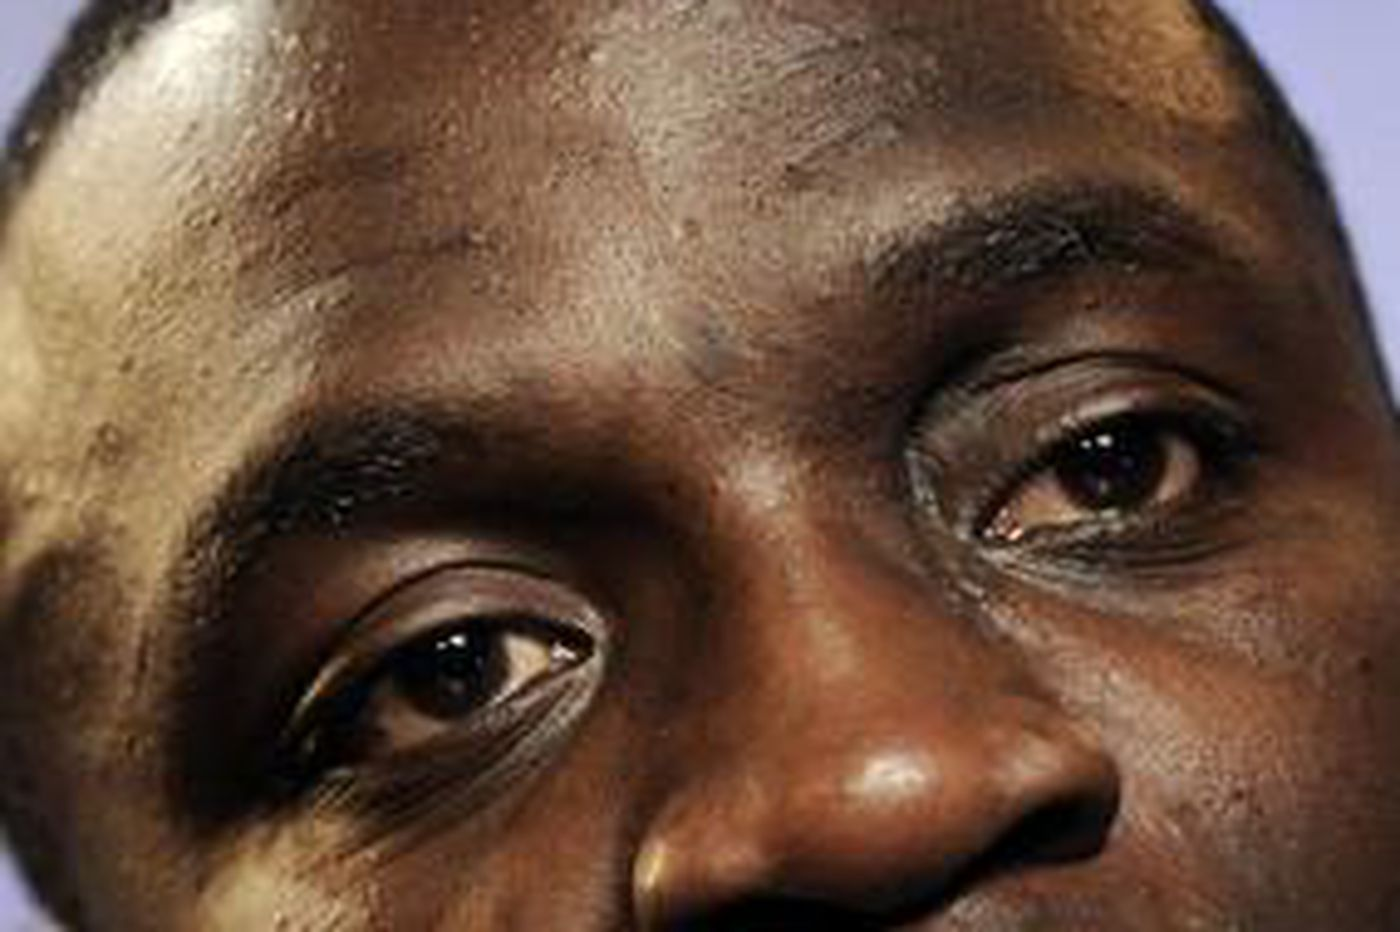 Akon edges away from criminal image